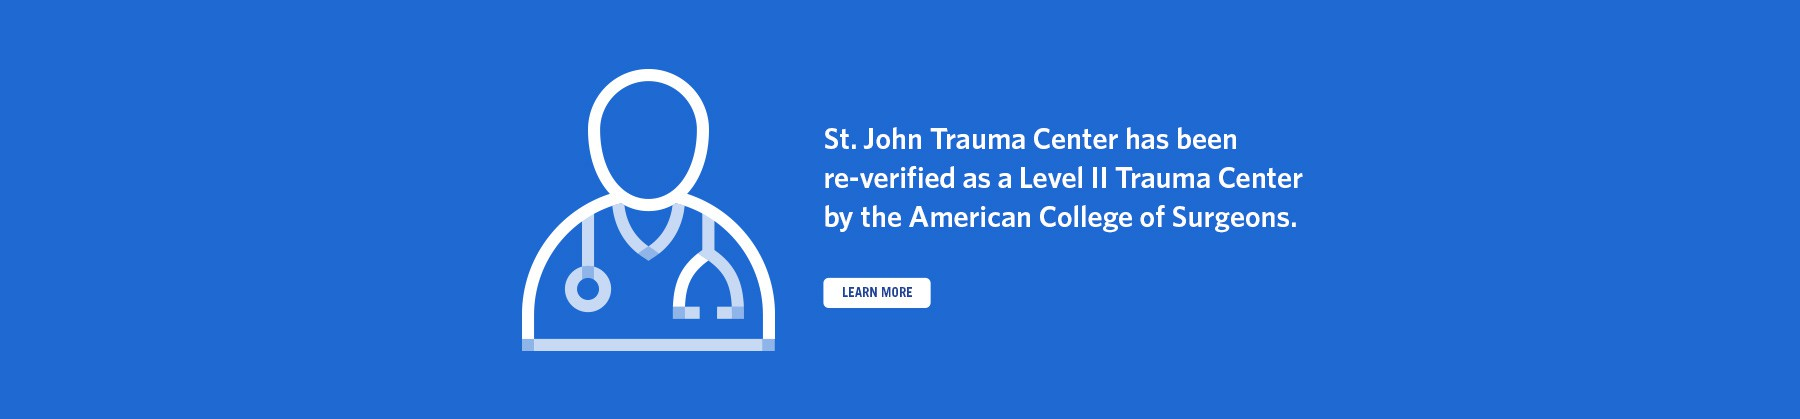 Trauma re-certification